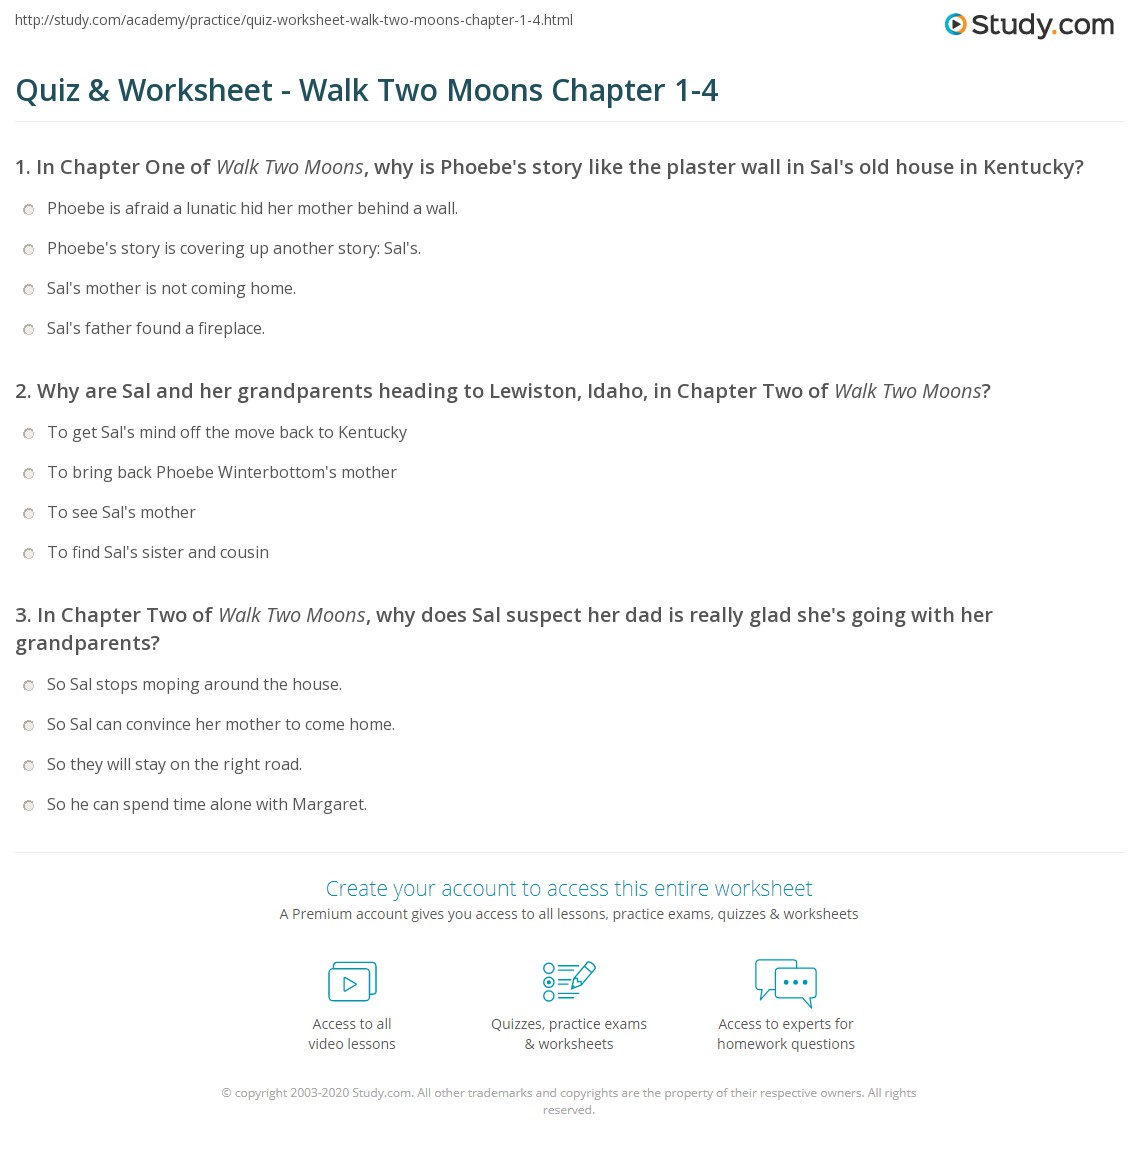 Worksheets Walk Two Moons Worksheets quiz worksheet walk two moons chapter 1 4 study com print summary chapters worksheet